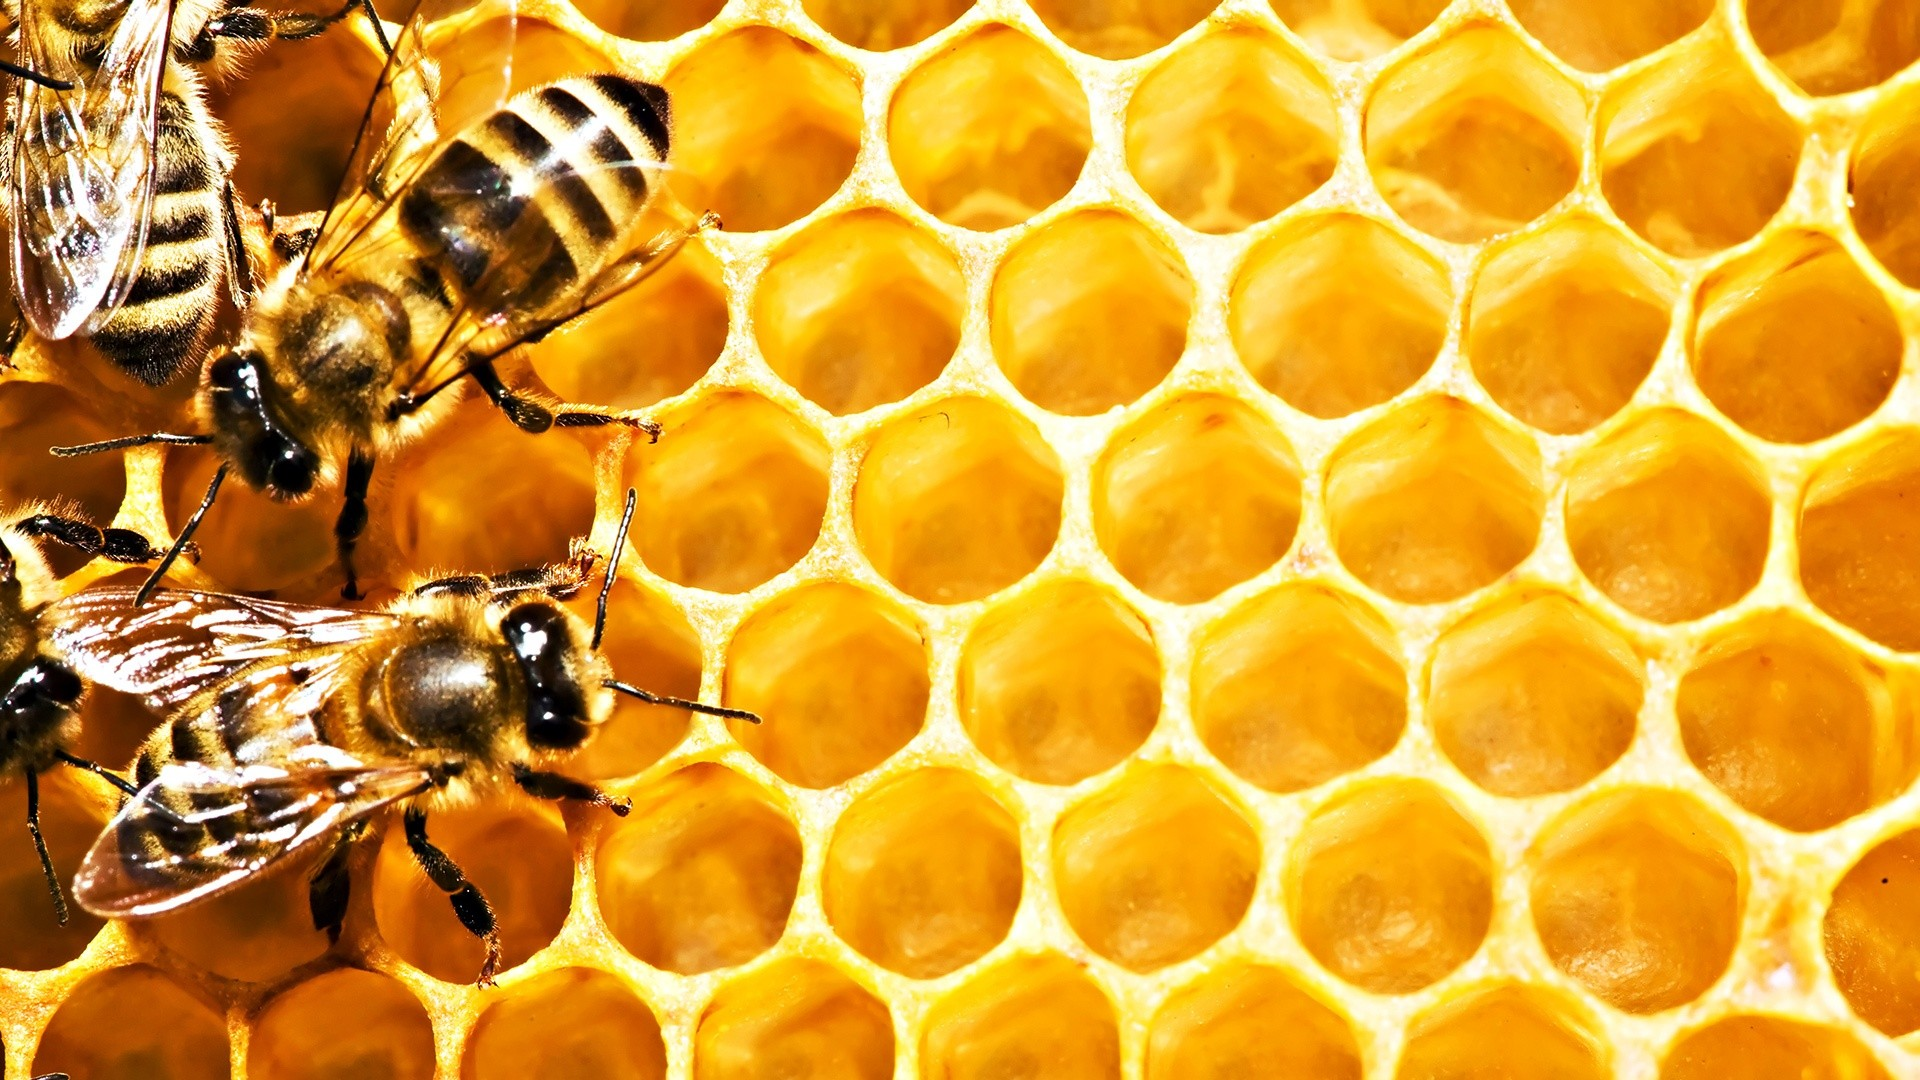 Honeycomb wallpapers background images page 6 - 1920x1080 Honeycomb Background 1920x1080 For Windows